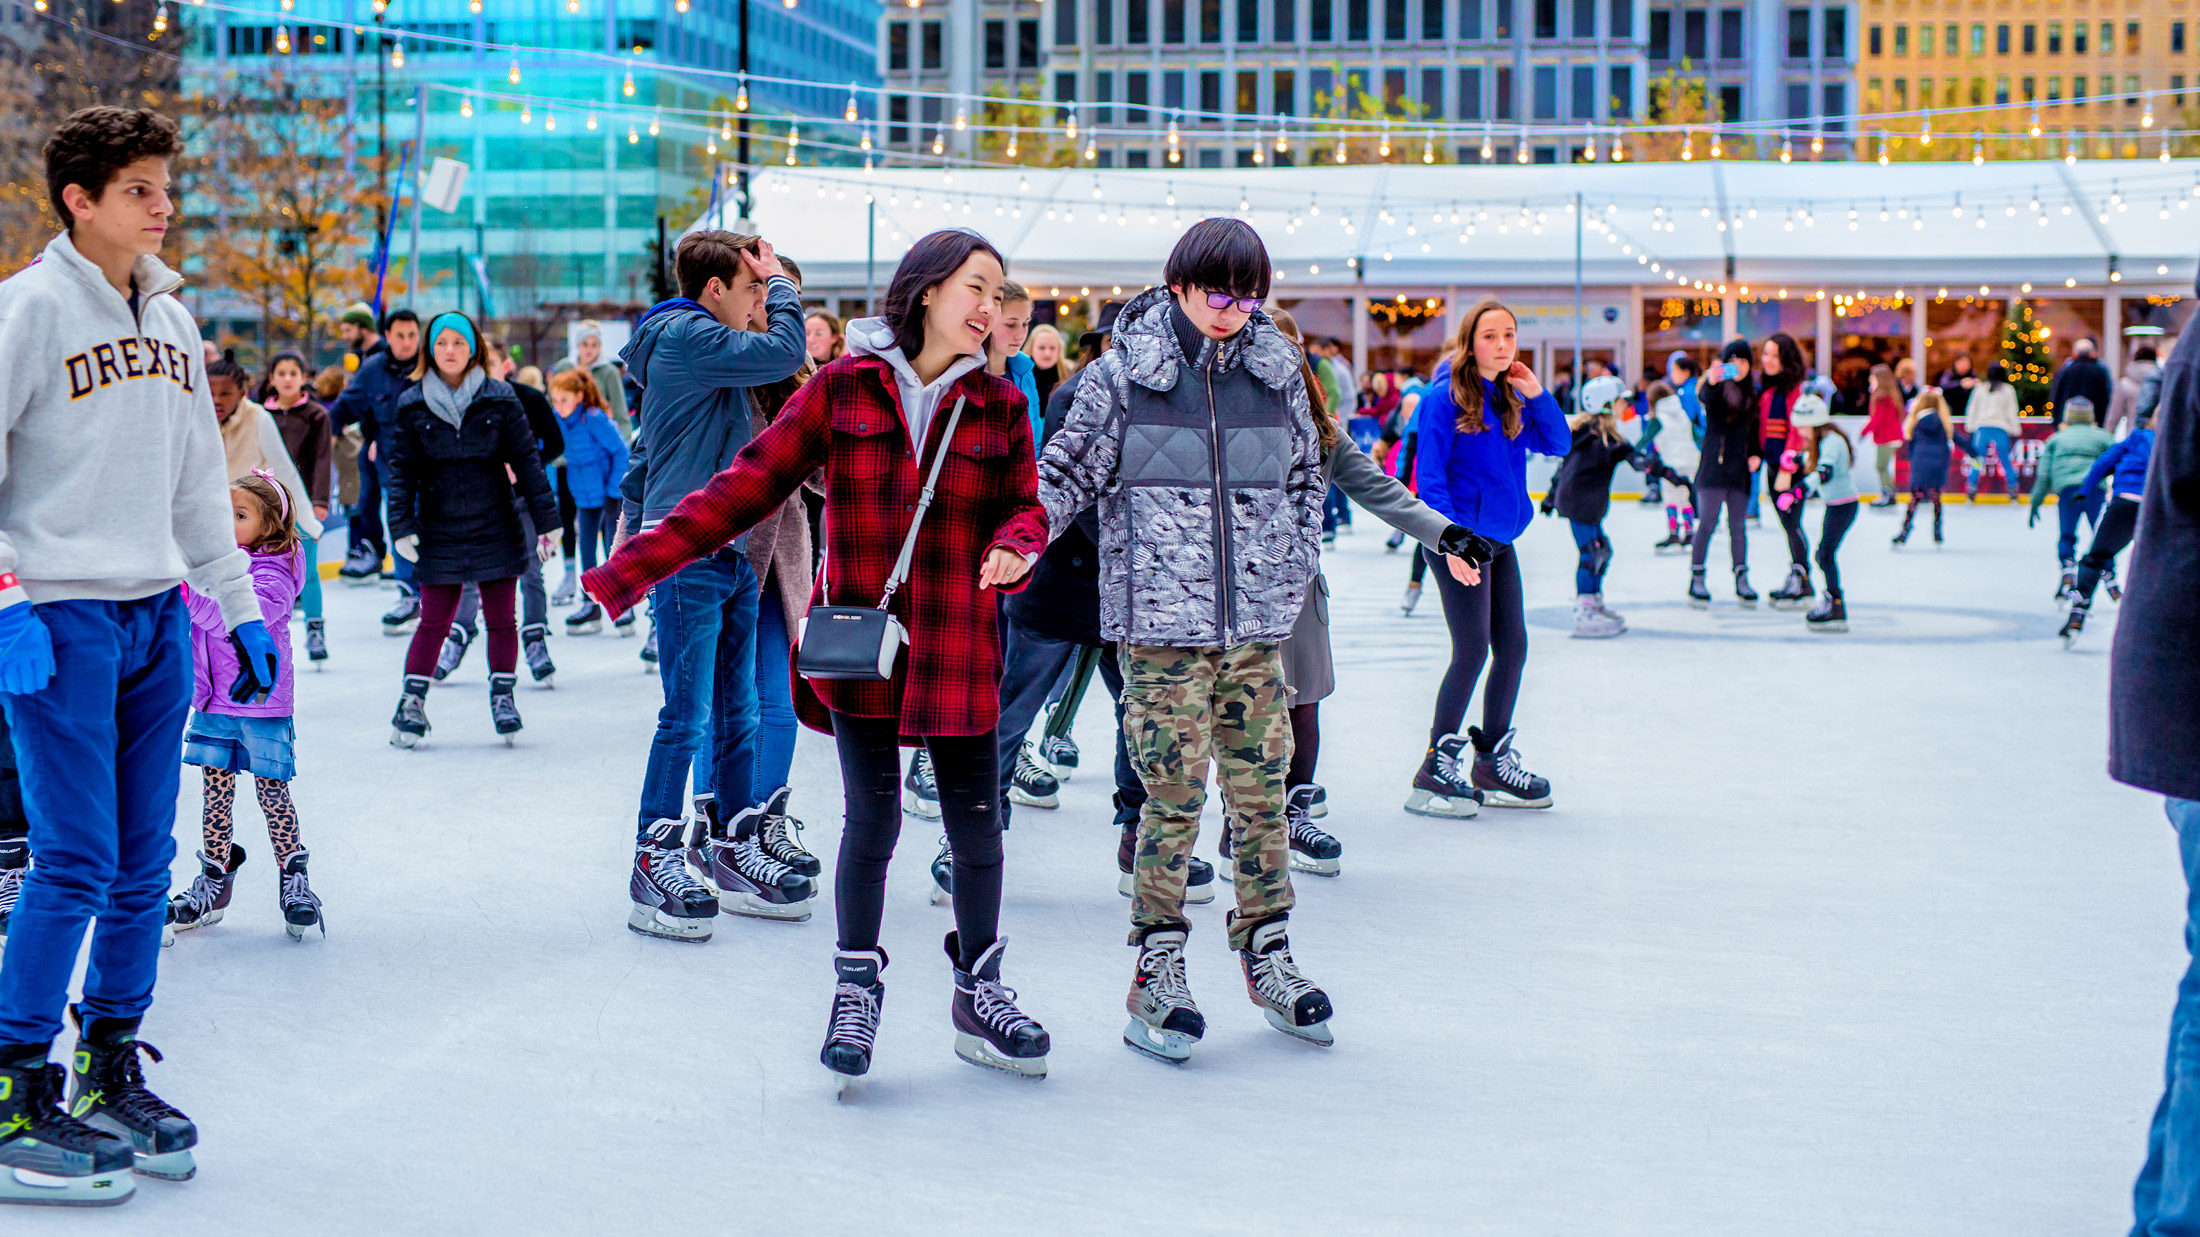 Couple skating at Rothman Ice Rink